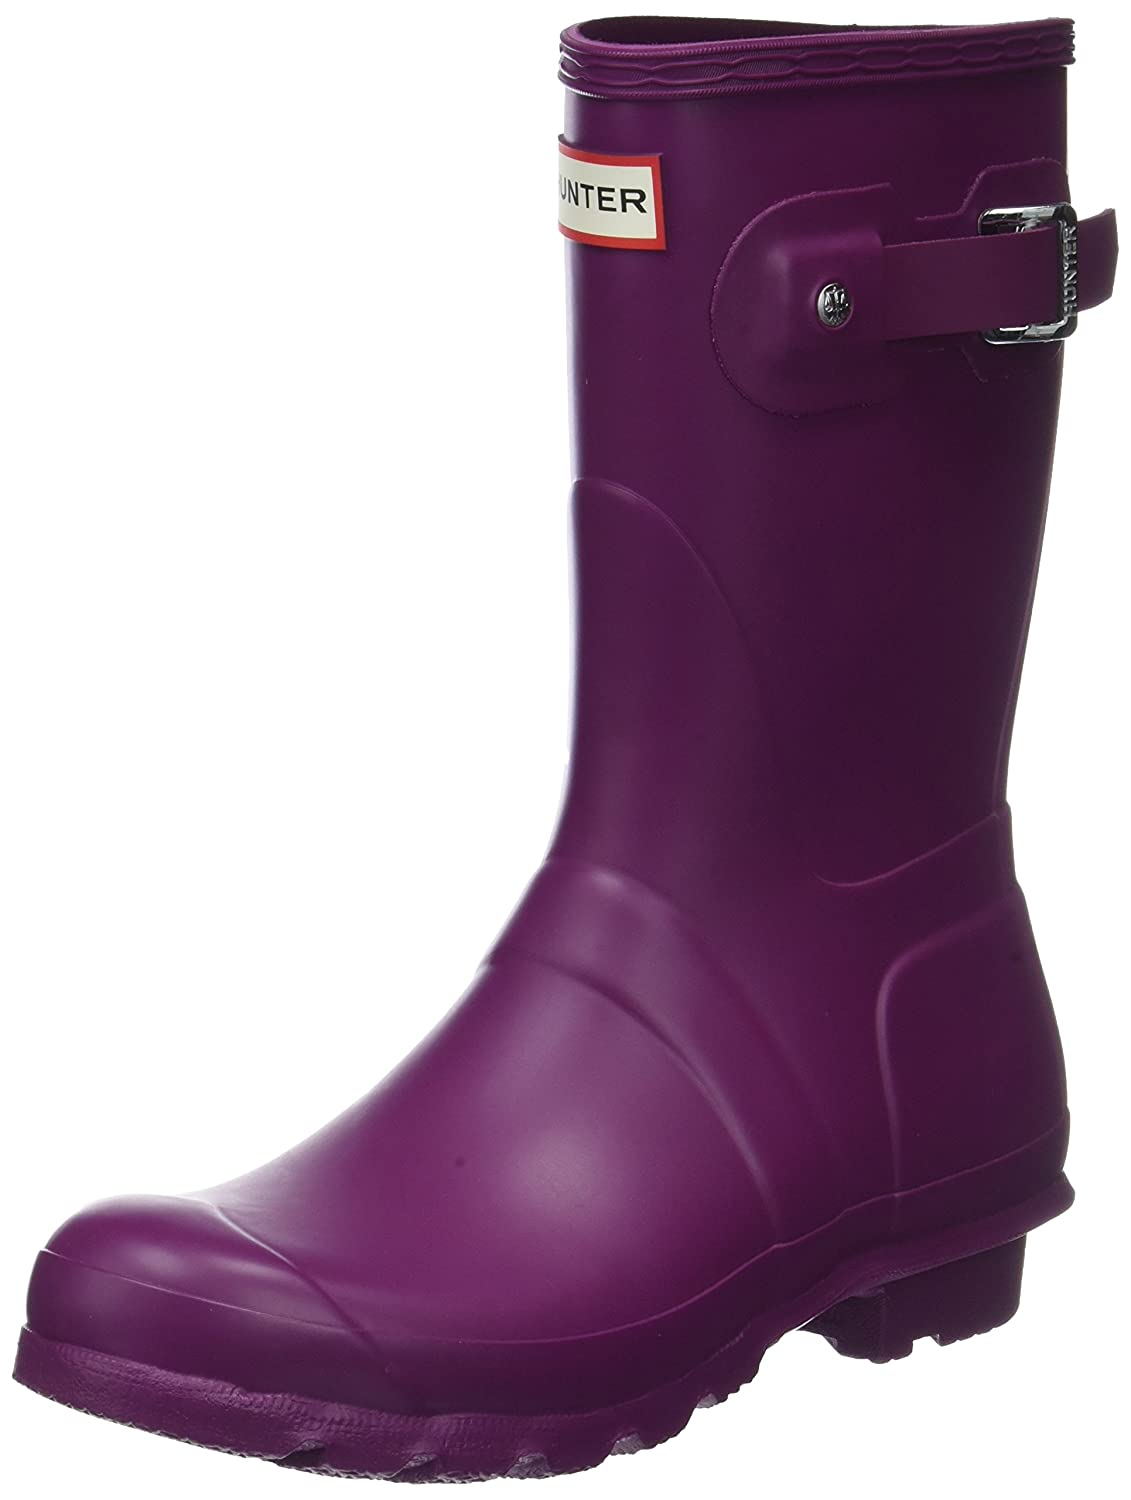 Hunter Damen Women Original Short Gummistiefel, Violett (Violet Rvi), 42 EU